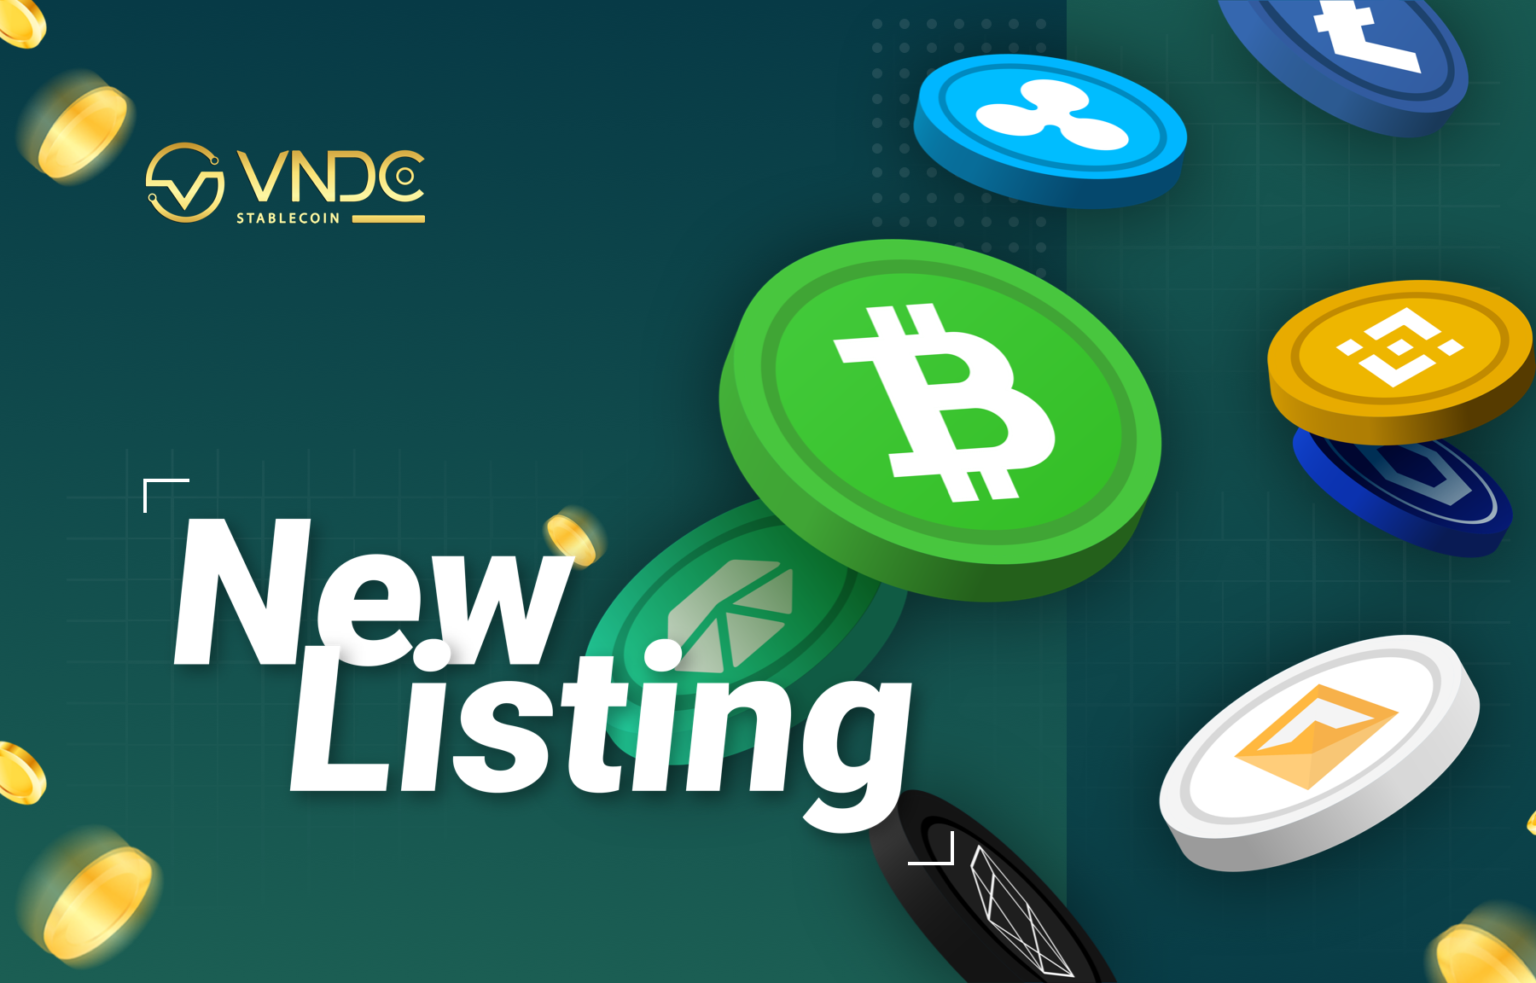 More digital assets (Altcoin) are listed on VNDC for investors